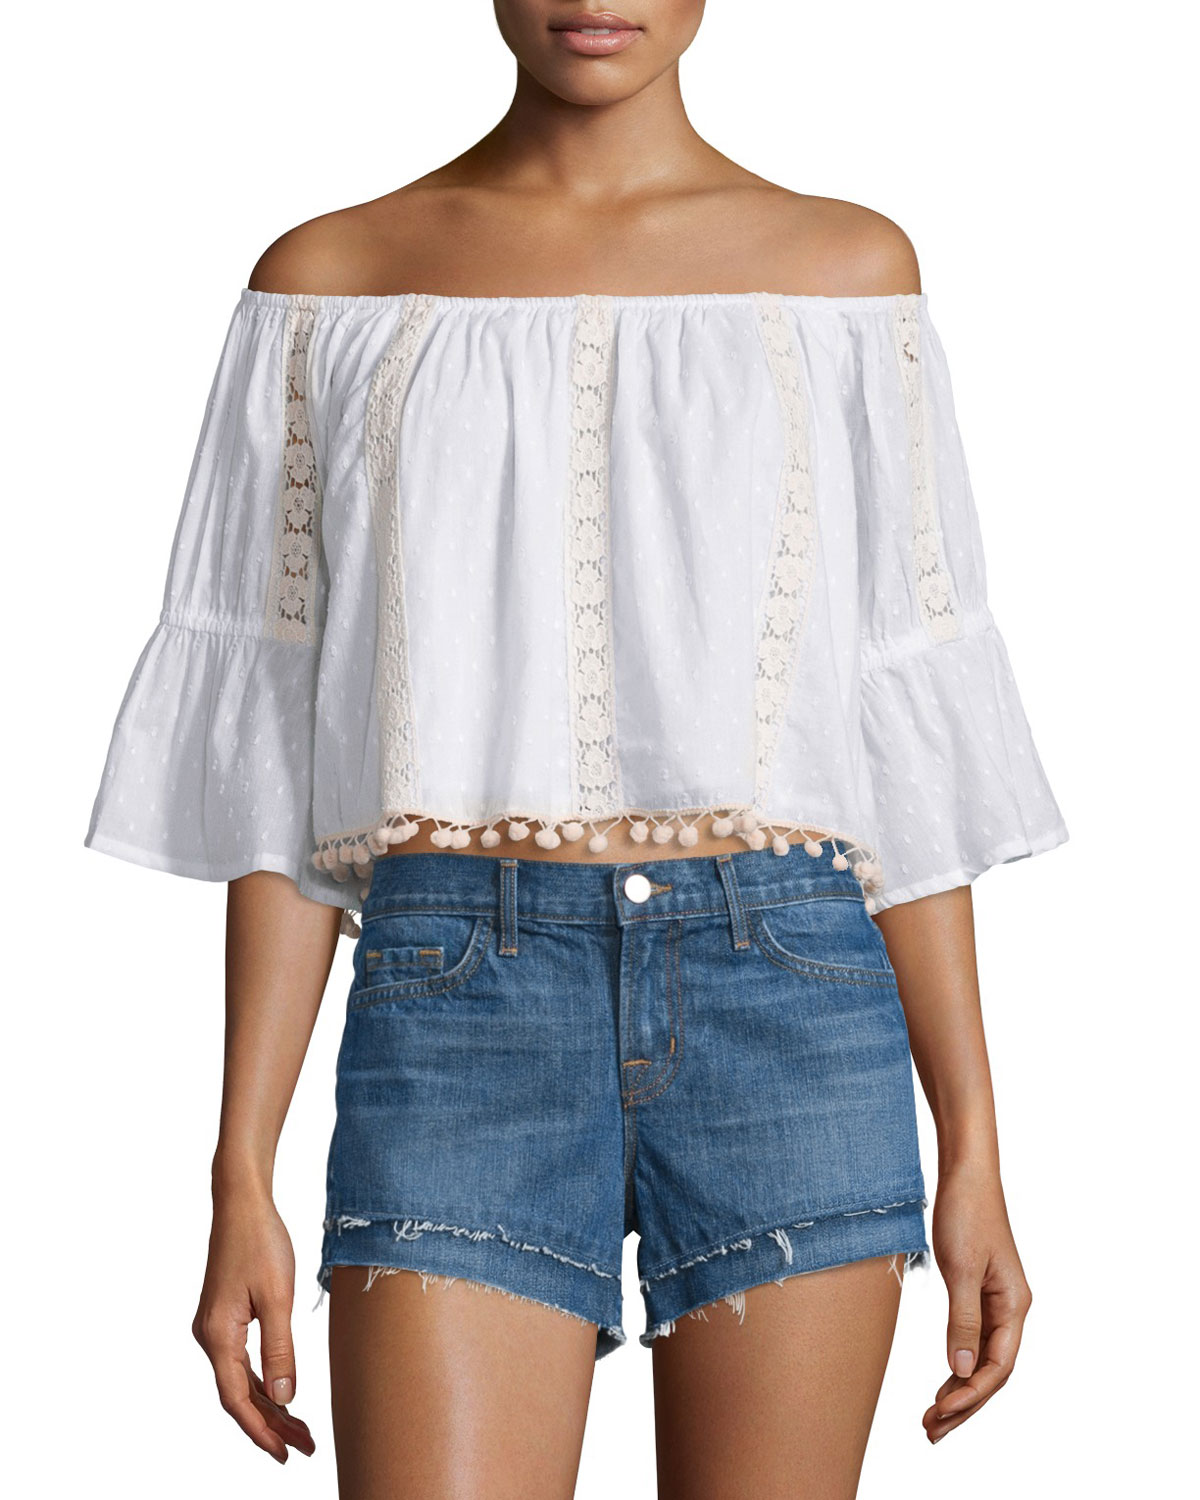 Alexa Lace-Inset Off-Shoulder Crop Top, White, Size: SMALL - Tularosa